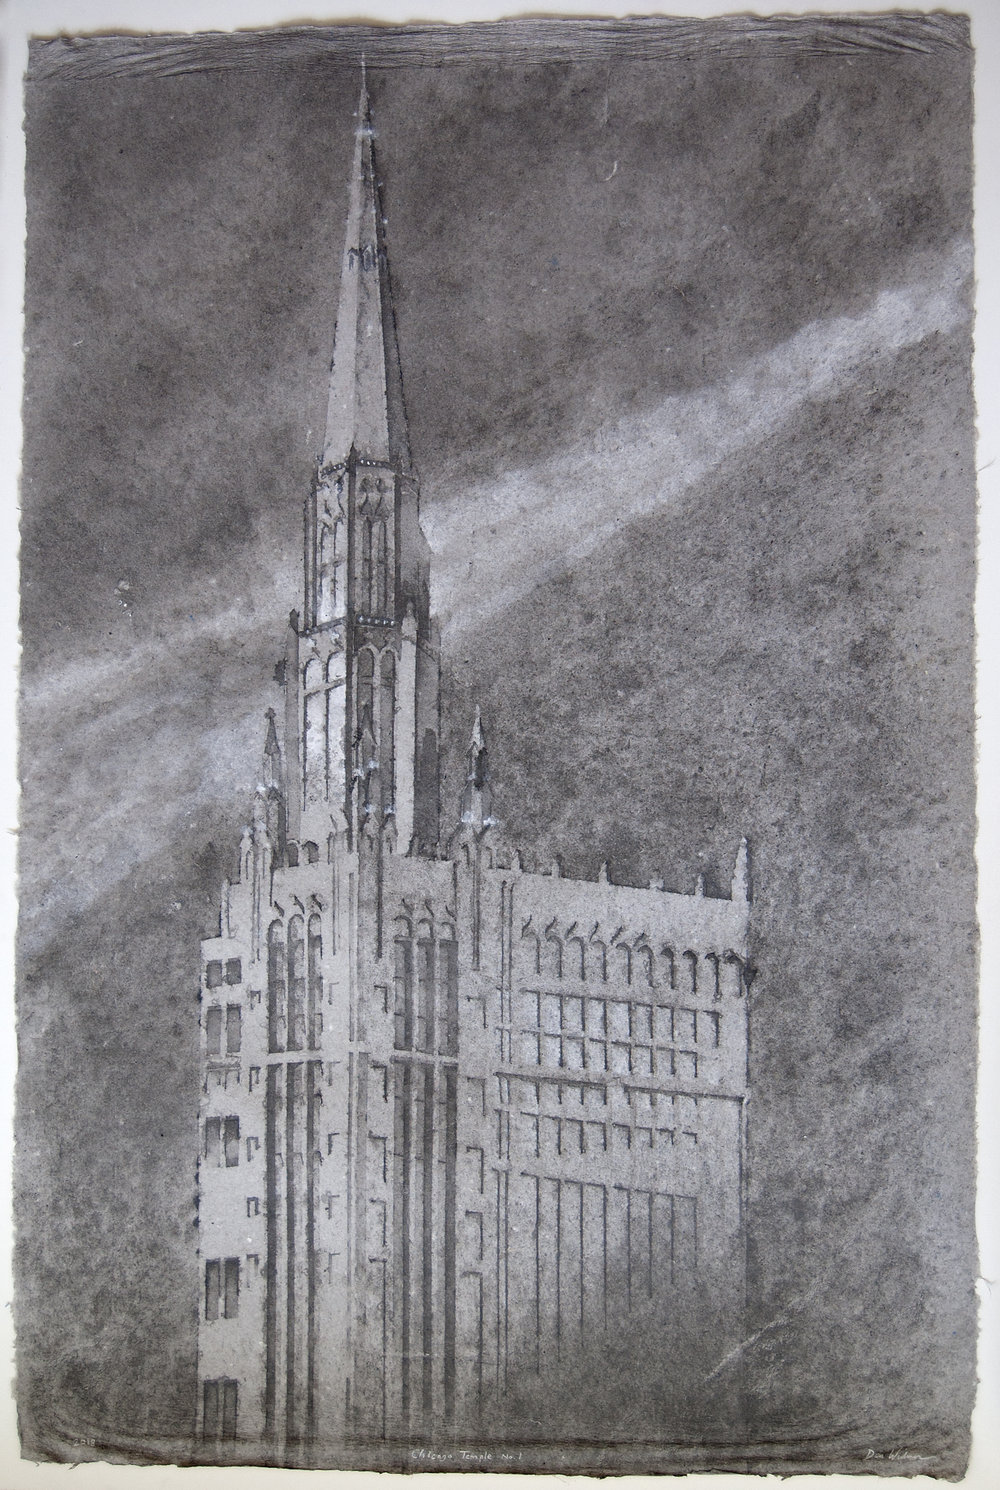 Chicago Temple No. 1